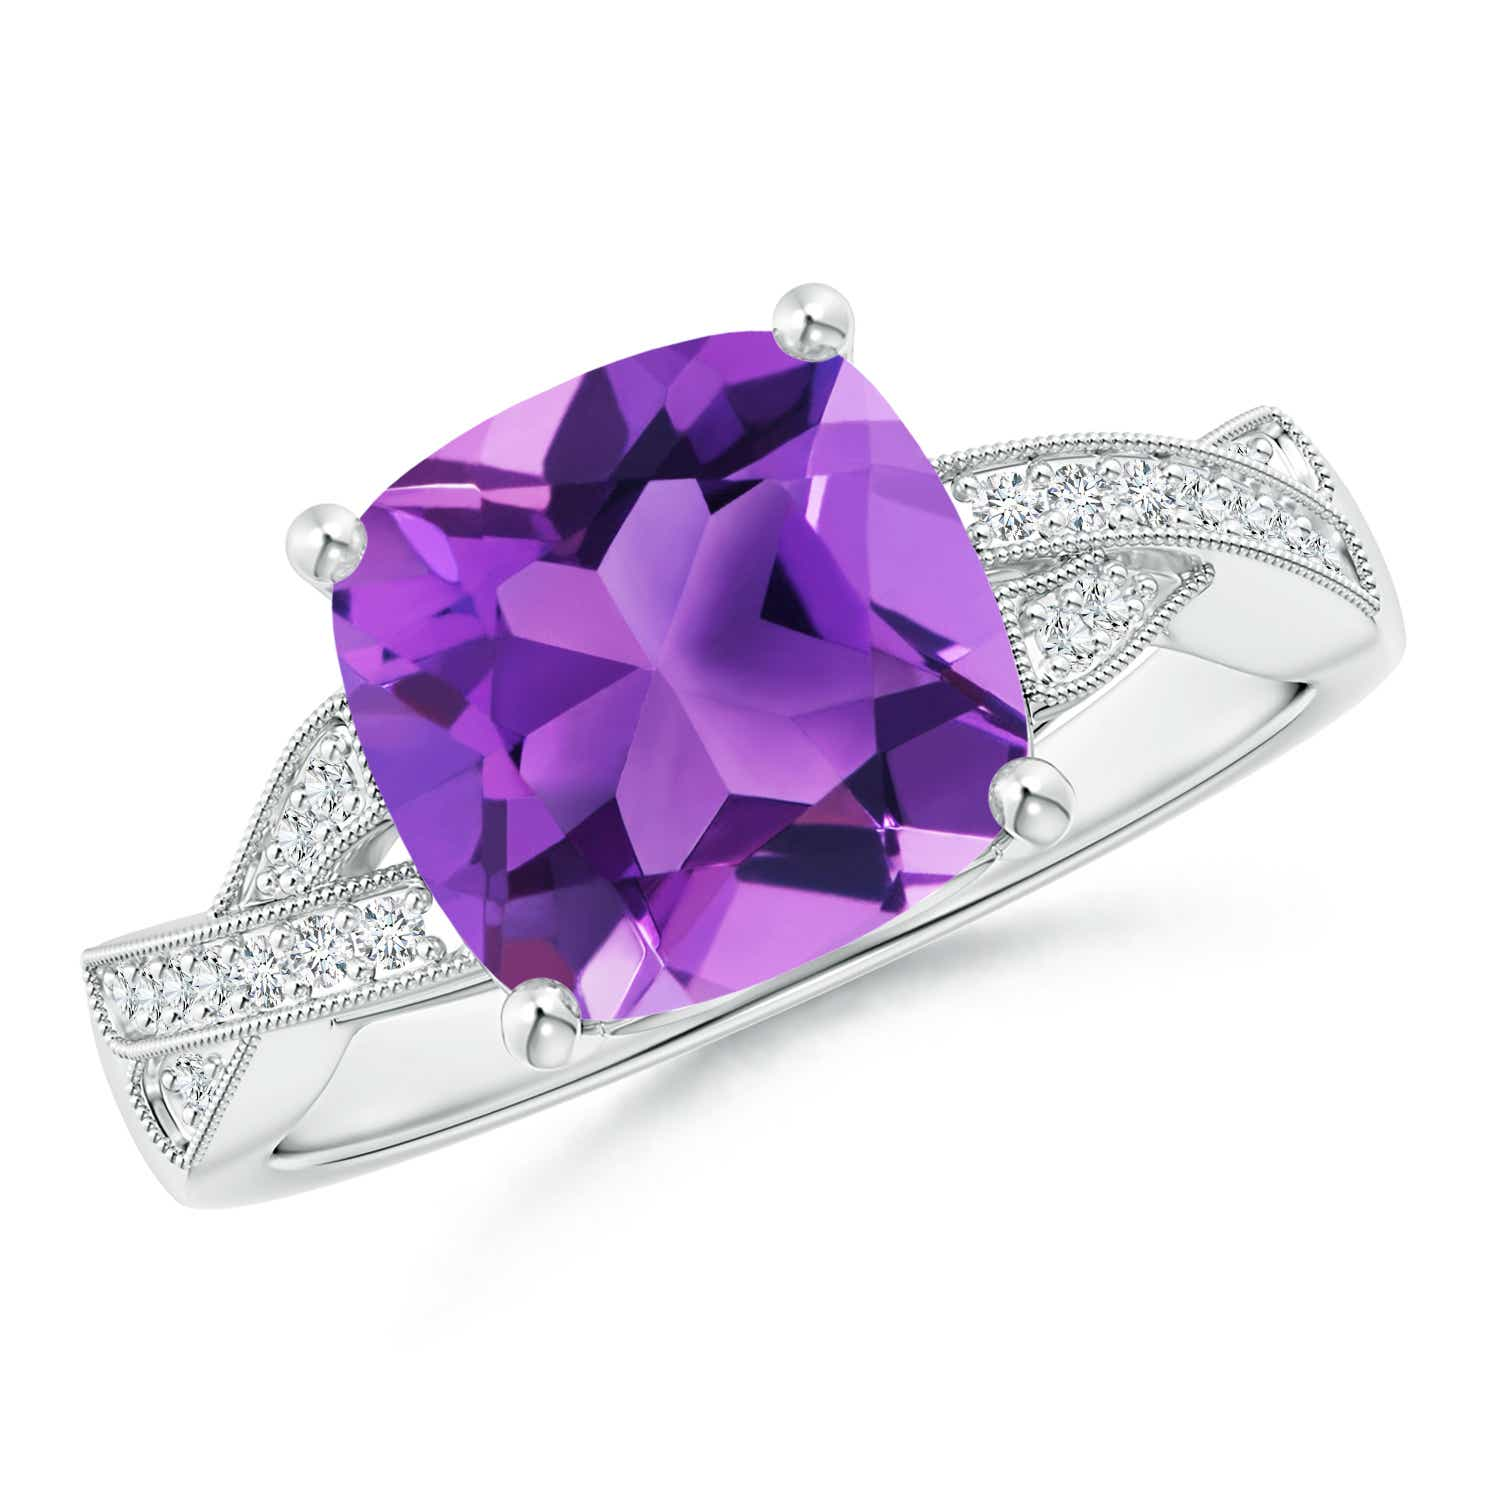 Solitaire Cushion Amethyst Criss Cross Ring with Diamonds - Angara.com